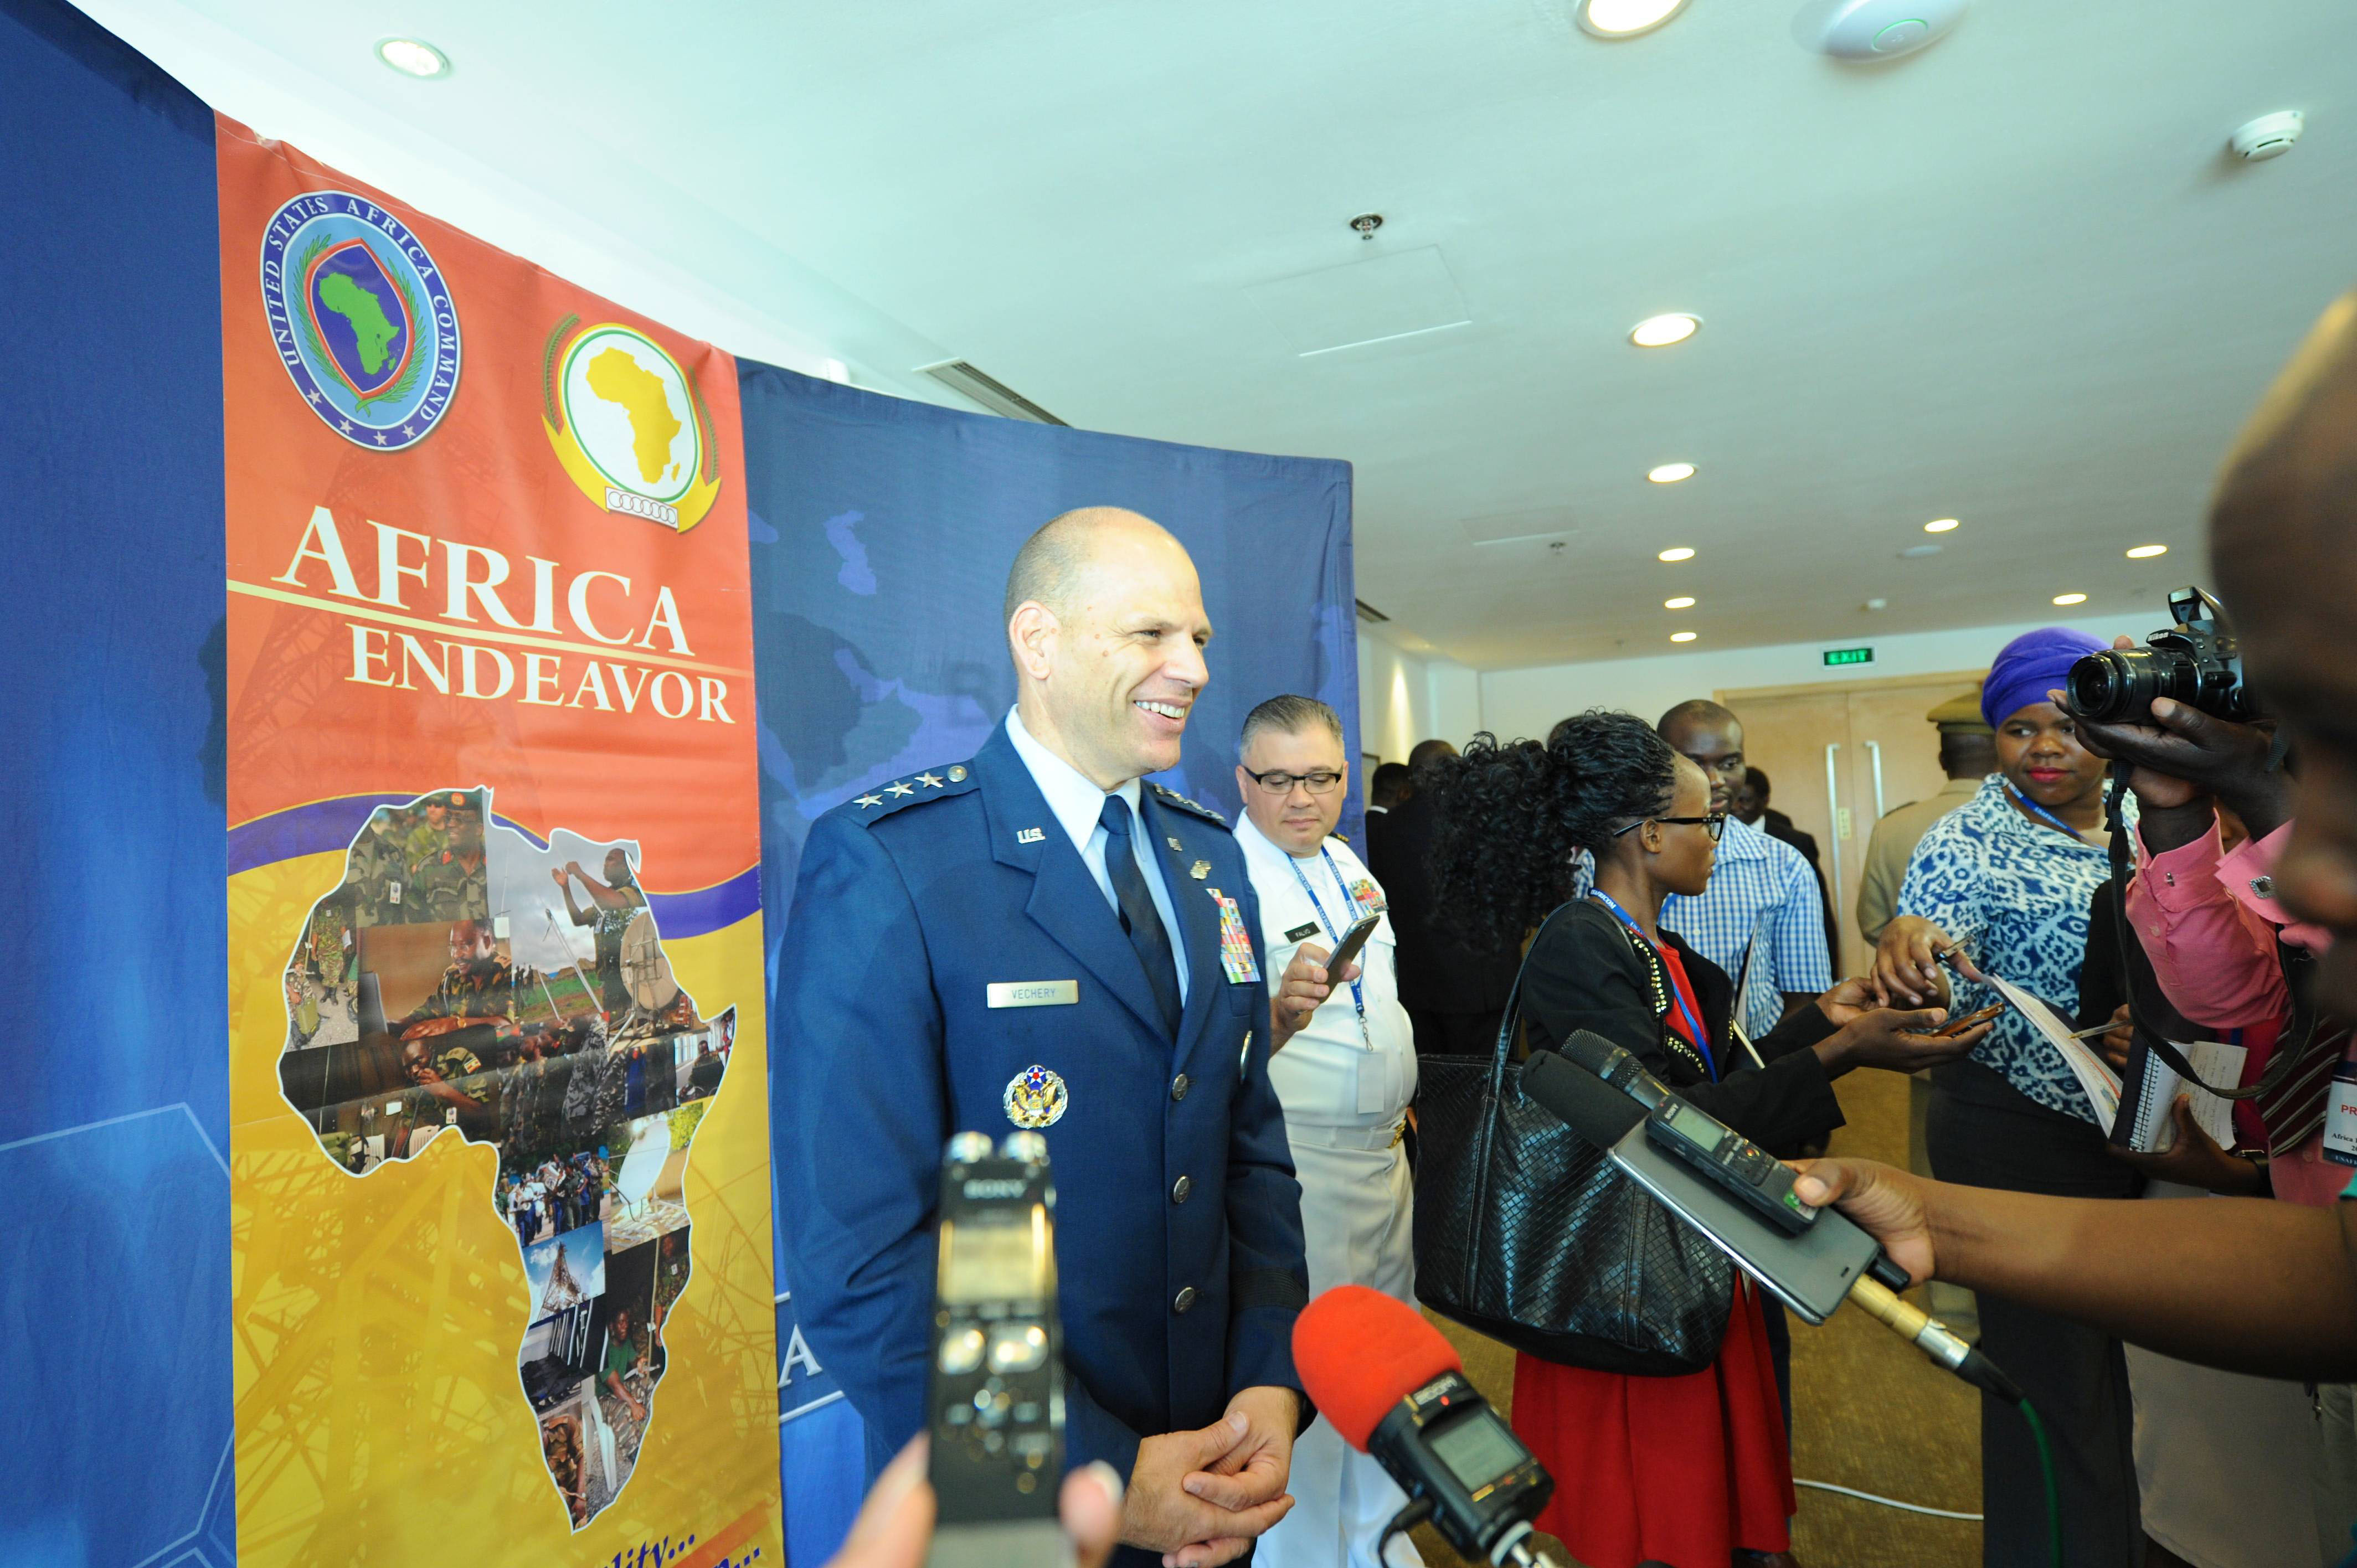 LILONGWE, Malawi - Lt. Gen. James C. Vechery, U.S. Africa Command Deputy to the Commander for Military Operations, answers questions during a press conference following the opening ceremony for Africa Endeavor 2017. Africa Endeavor is an annual senior leader and communications symposium and technology expo designed to develop standardized, multinational communications practices for peacekeeping and disaster response missions mandated by the African Union and the United Nations. (Official Photo by Navy Mass Communication Specialist 2nd Class (SW/AW) Dominique Shelton/RELEASED)